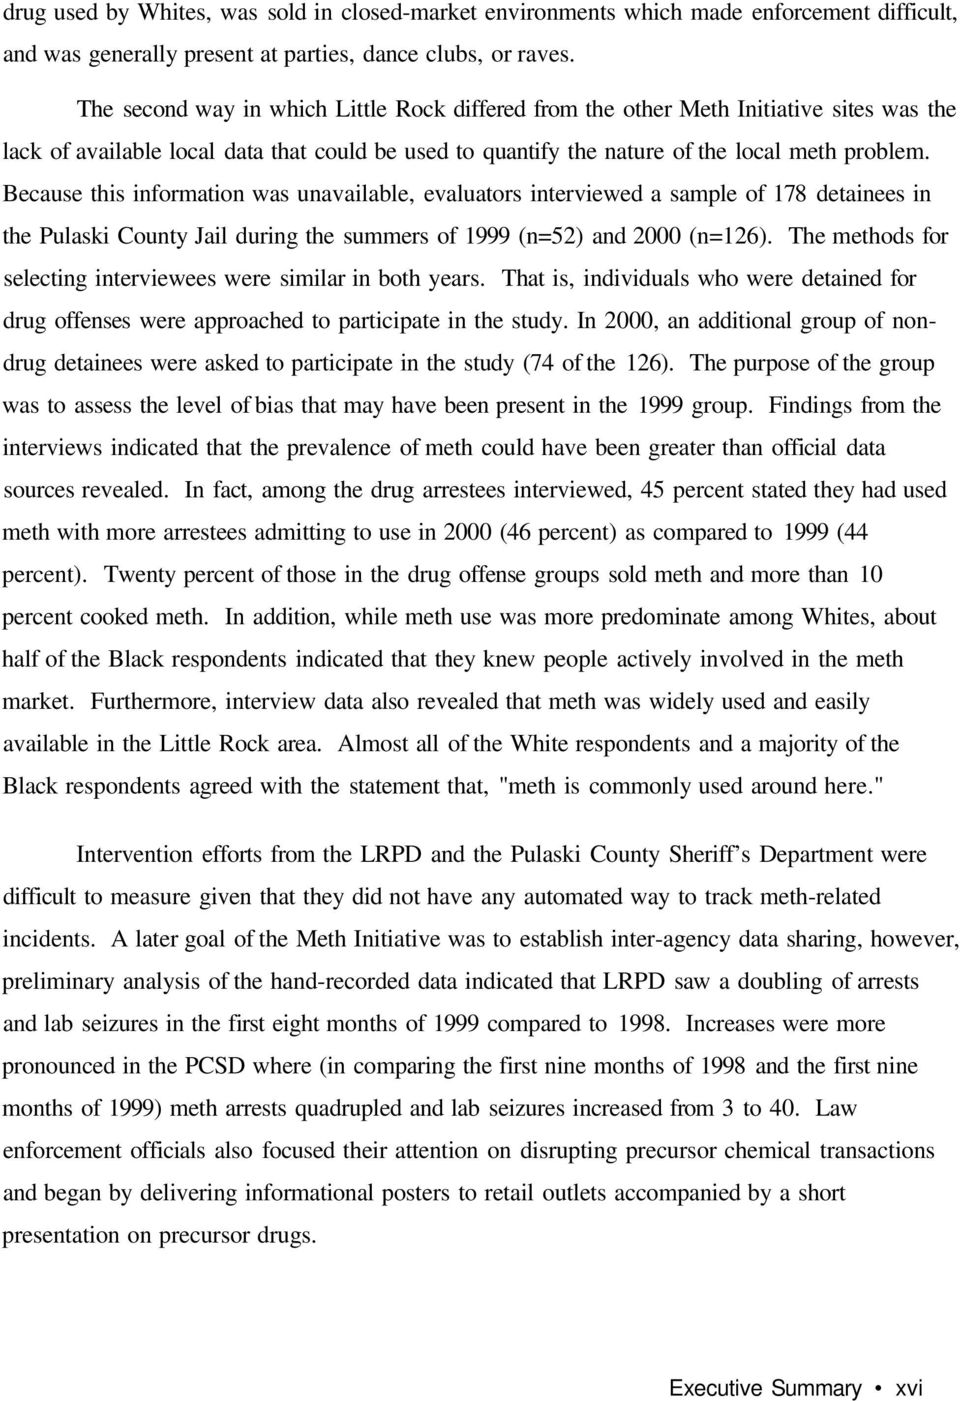 Because this information was unavailable, evaluators interviewed a sample of 178 detainees in the Pulaski County Jail during the summers of 1999 (n=52) and 2000 (n=126).